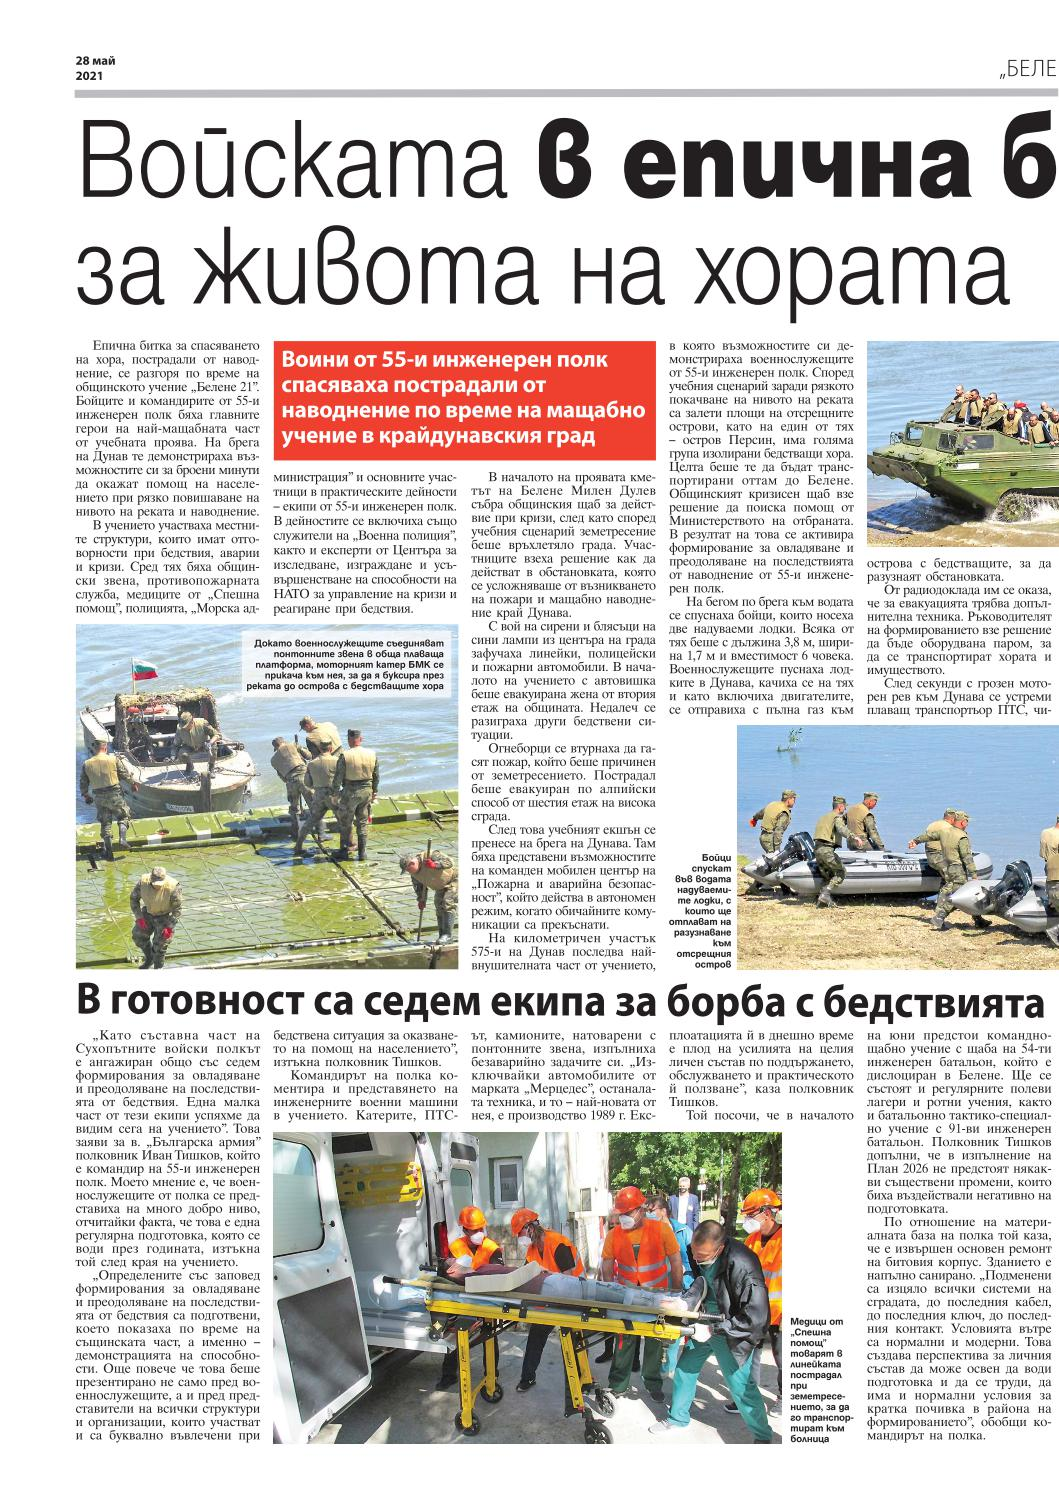 https://armymedia.bg/wp-content/uploads/2021/05/12.page1_-3.jpg